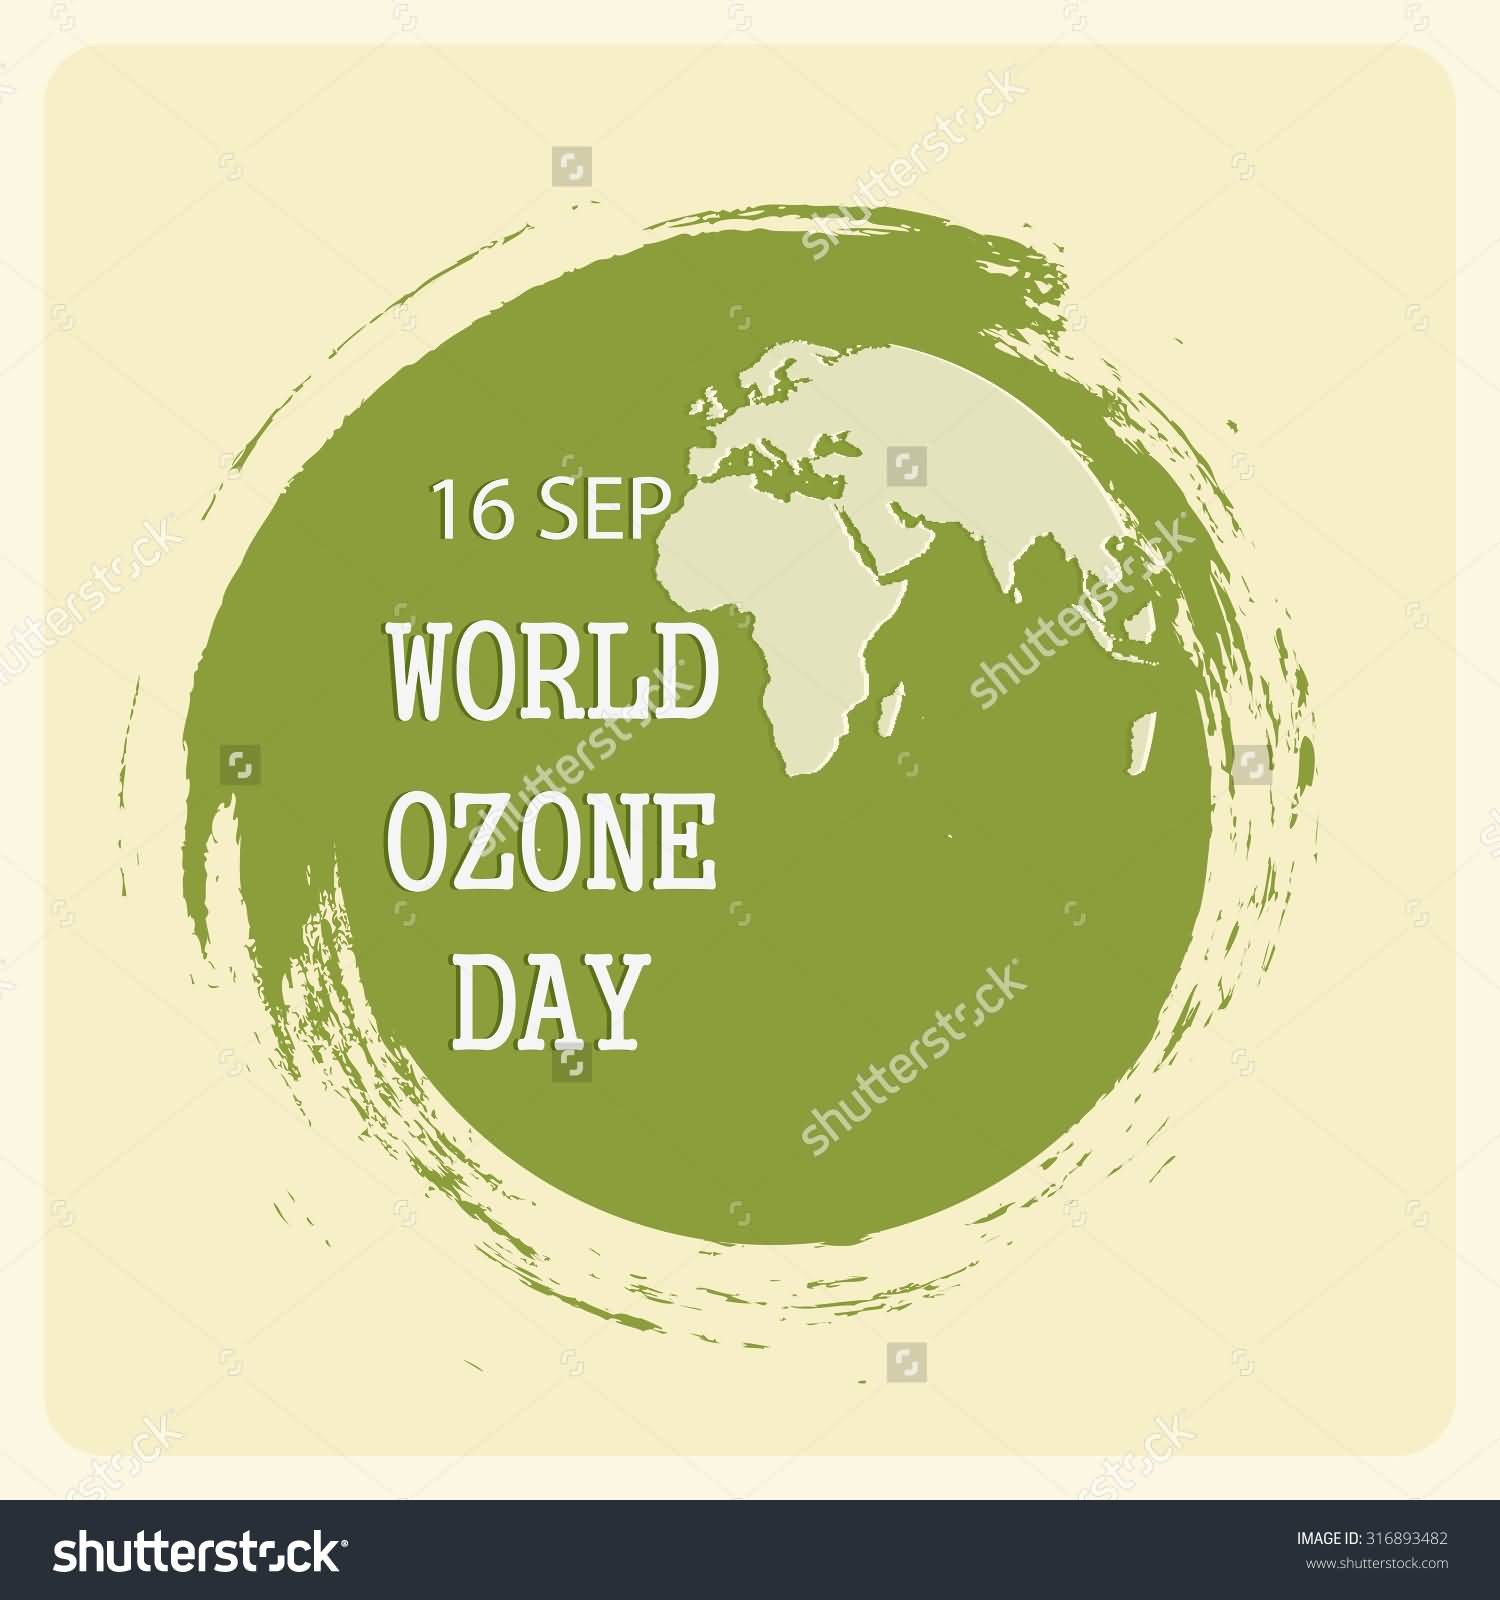 world ozone day essay Since 1995, on 16 september each year, the international day for the  preservation of the ozone layer is celebrated.